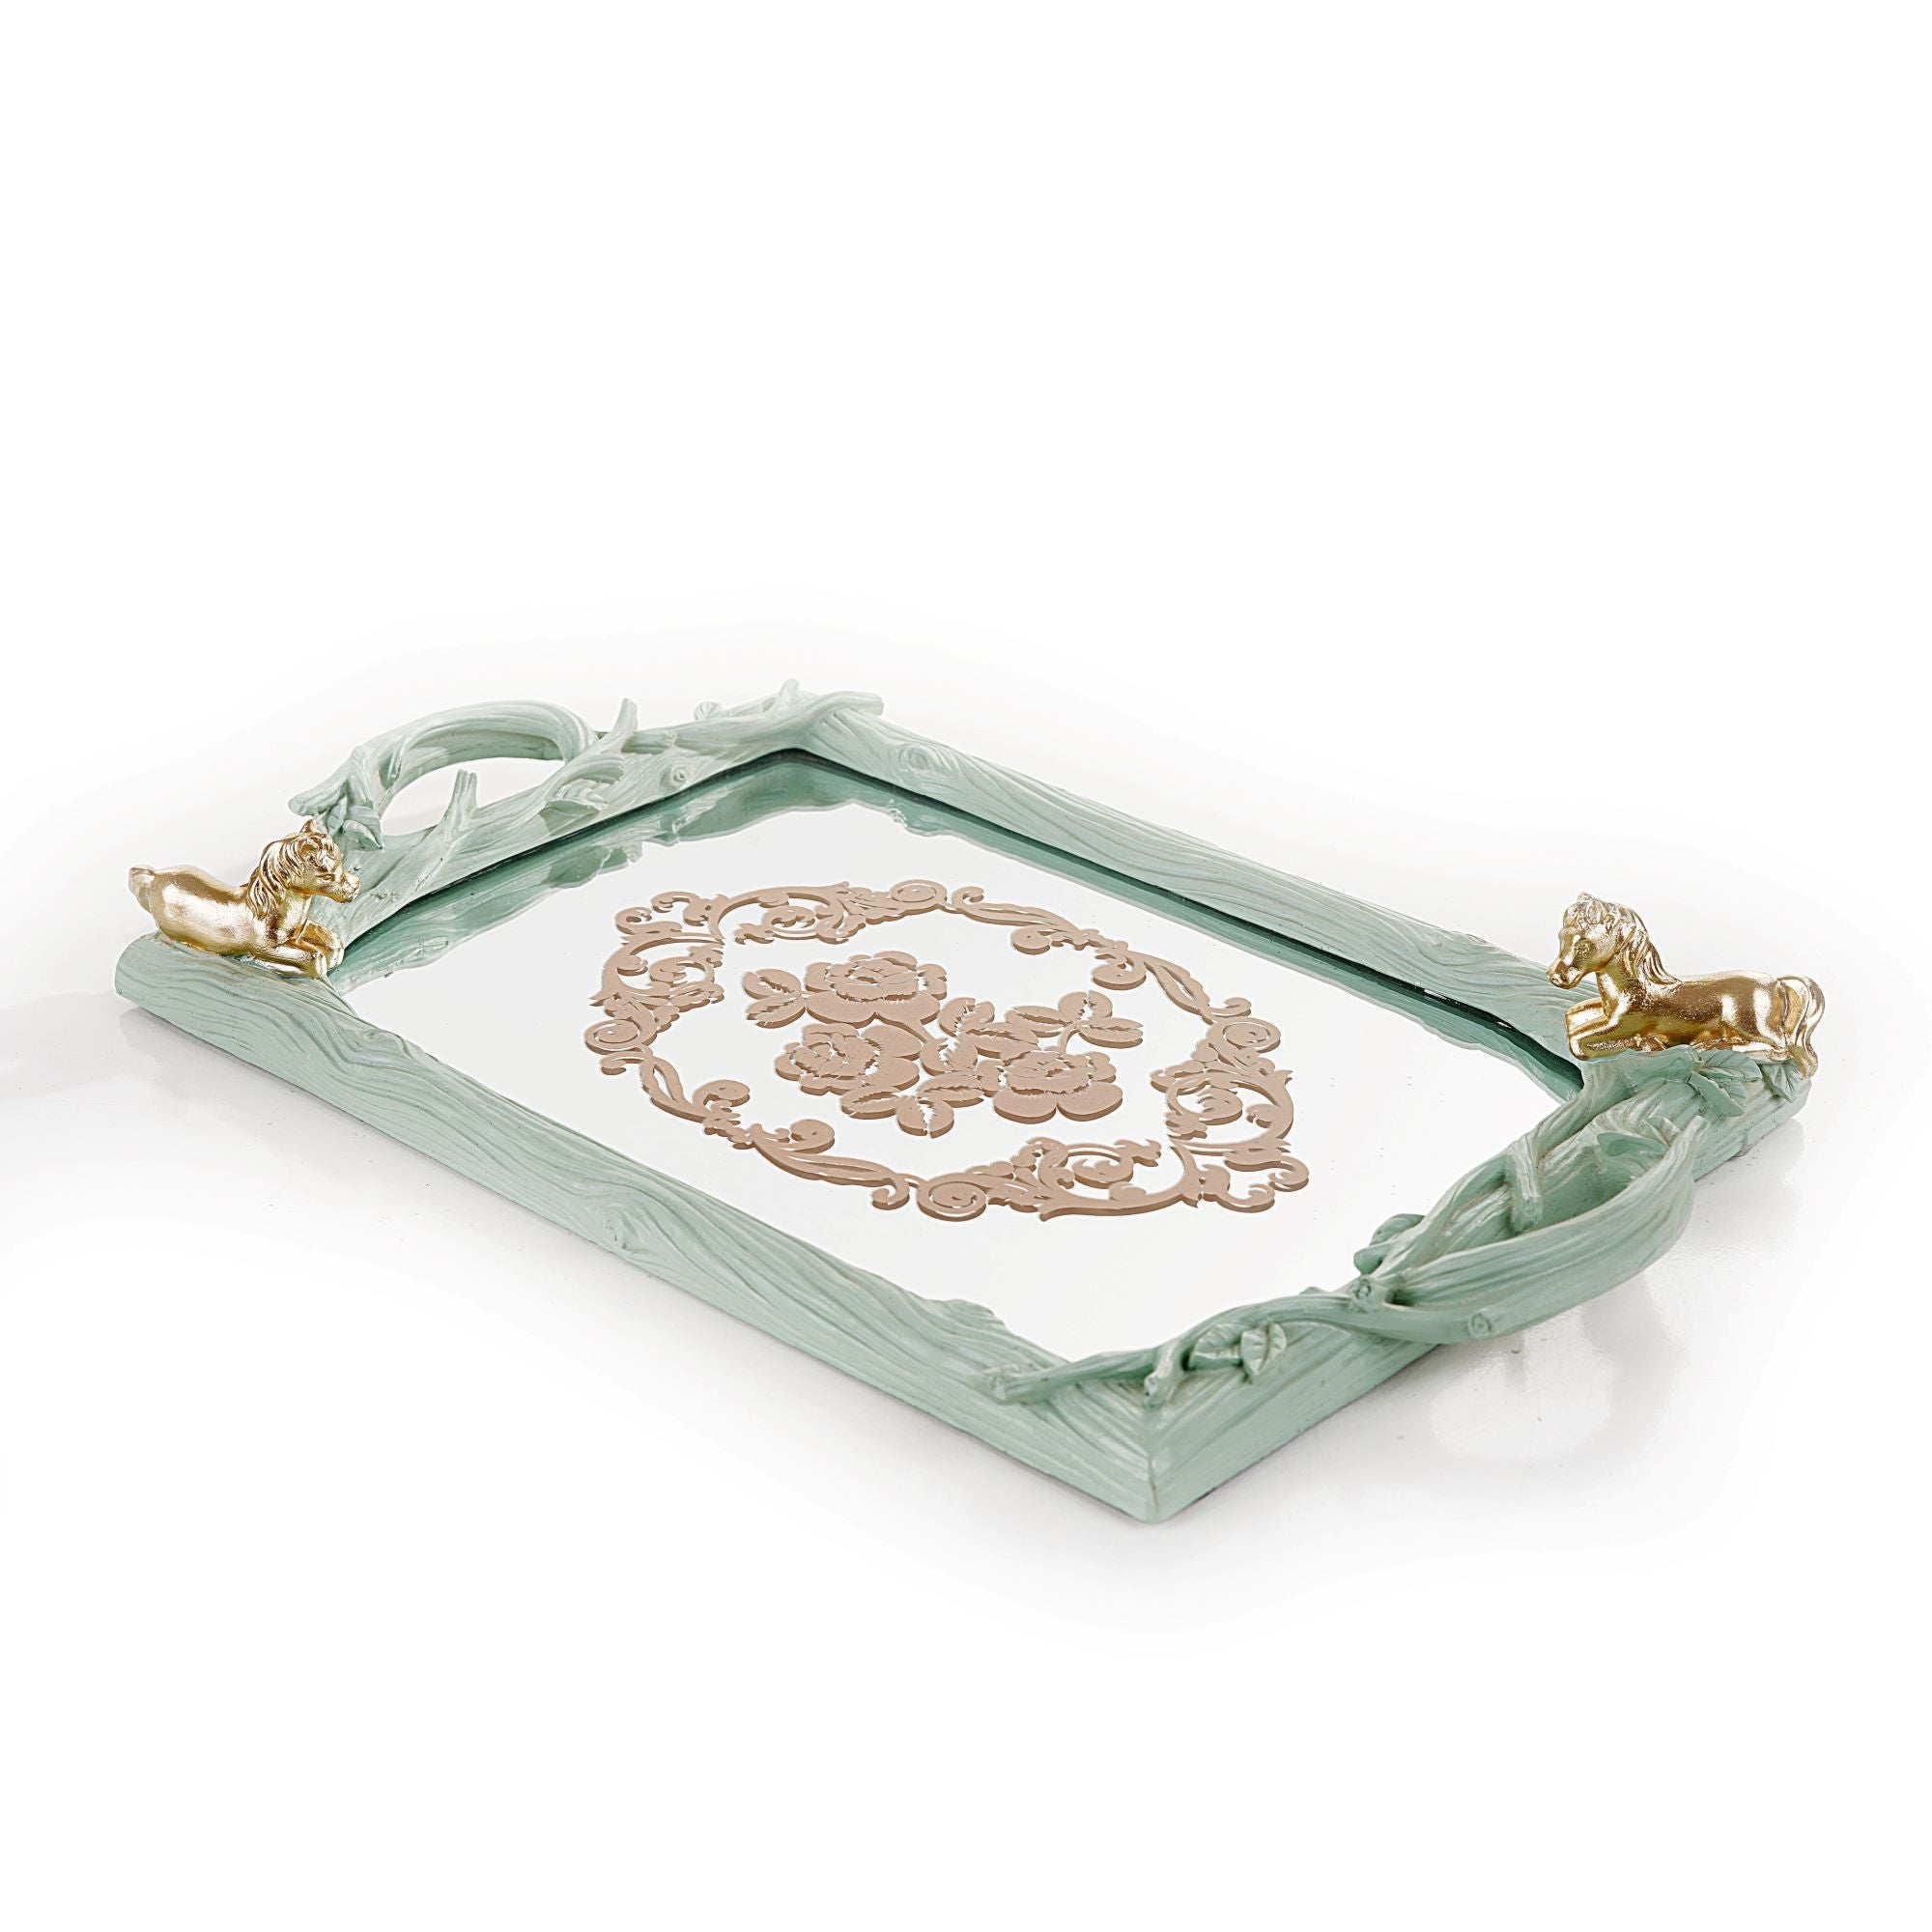 Rectanguler Embroiderd Horse Tray (Lite Green)